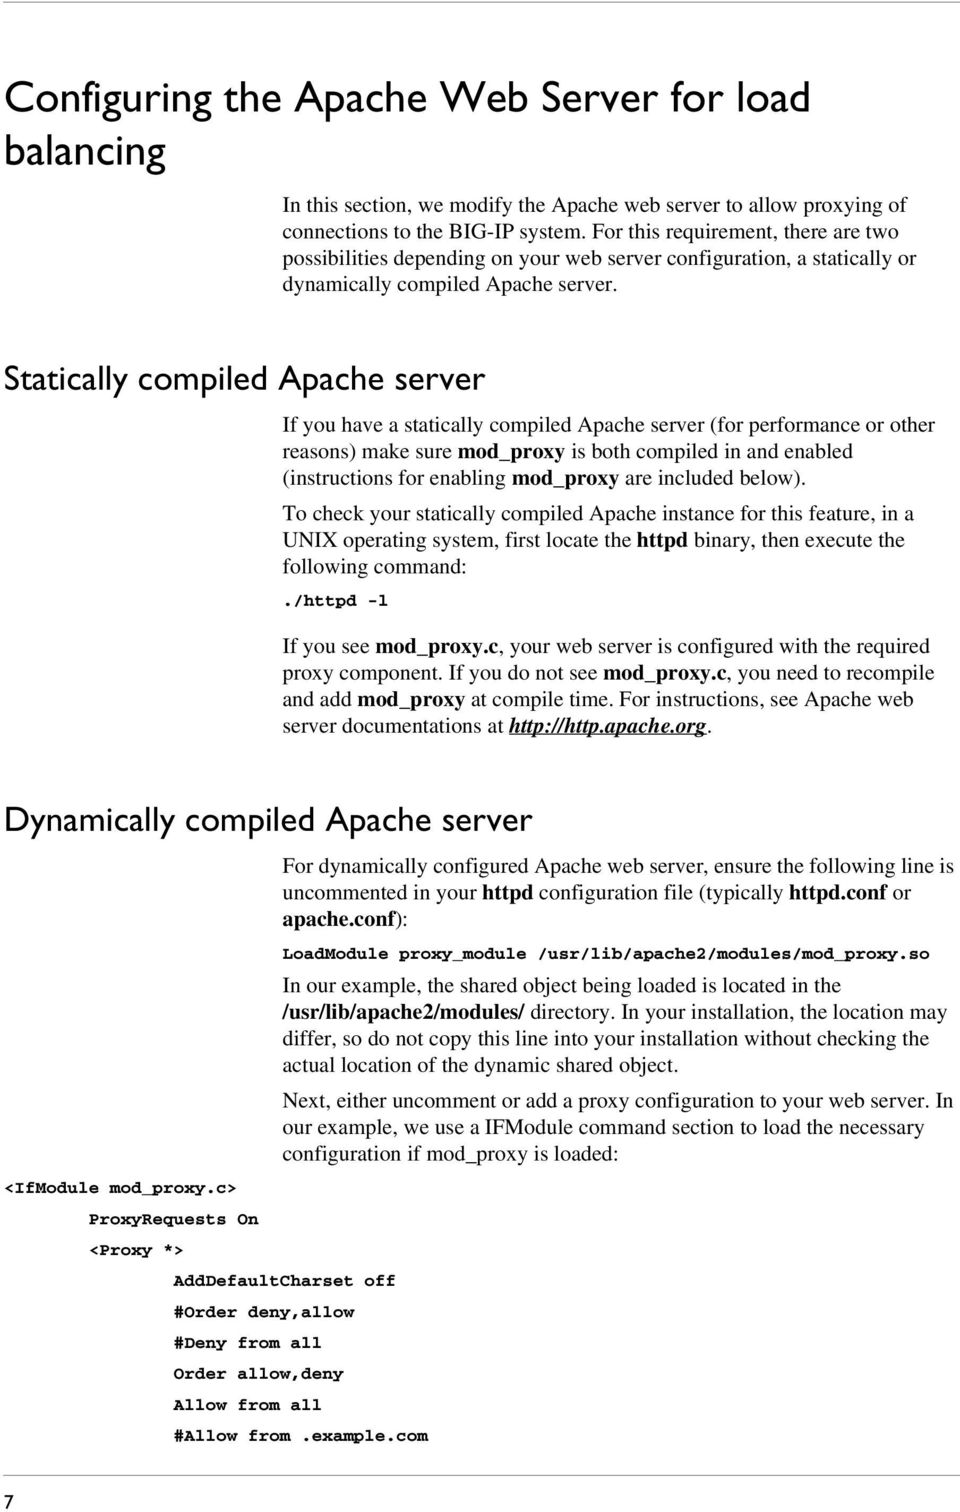 Statically compiled Apache server If you have a statically compiled Apache server (for performance or other reasons) make sure mod_proxy is both compiled in and enabled (instructions for enabling